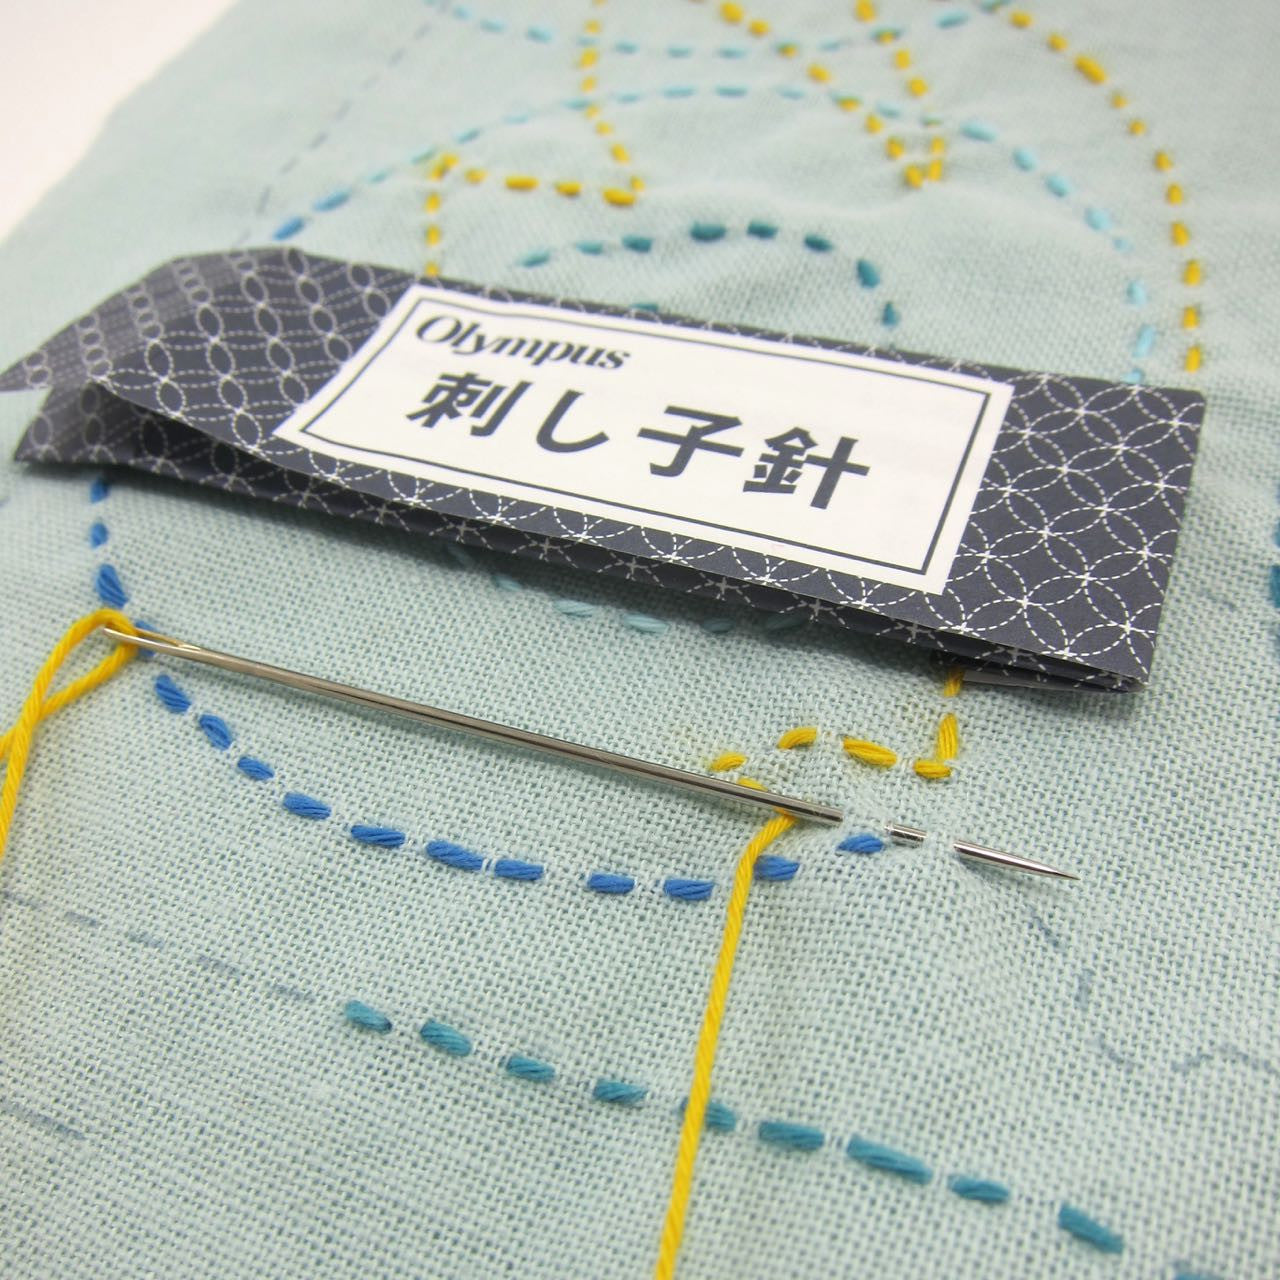 Japanese Sashiko Needles by Olympus Sashiko - Snuggly Monkey